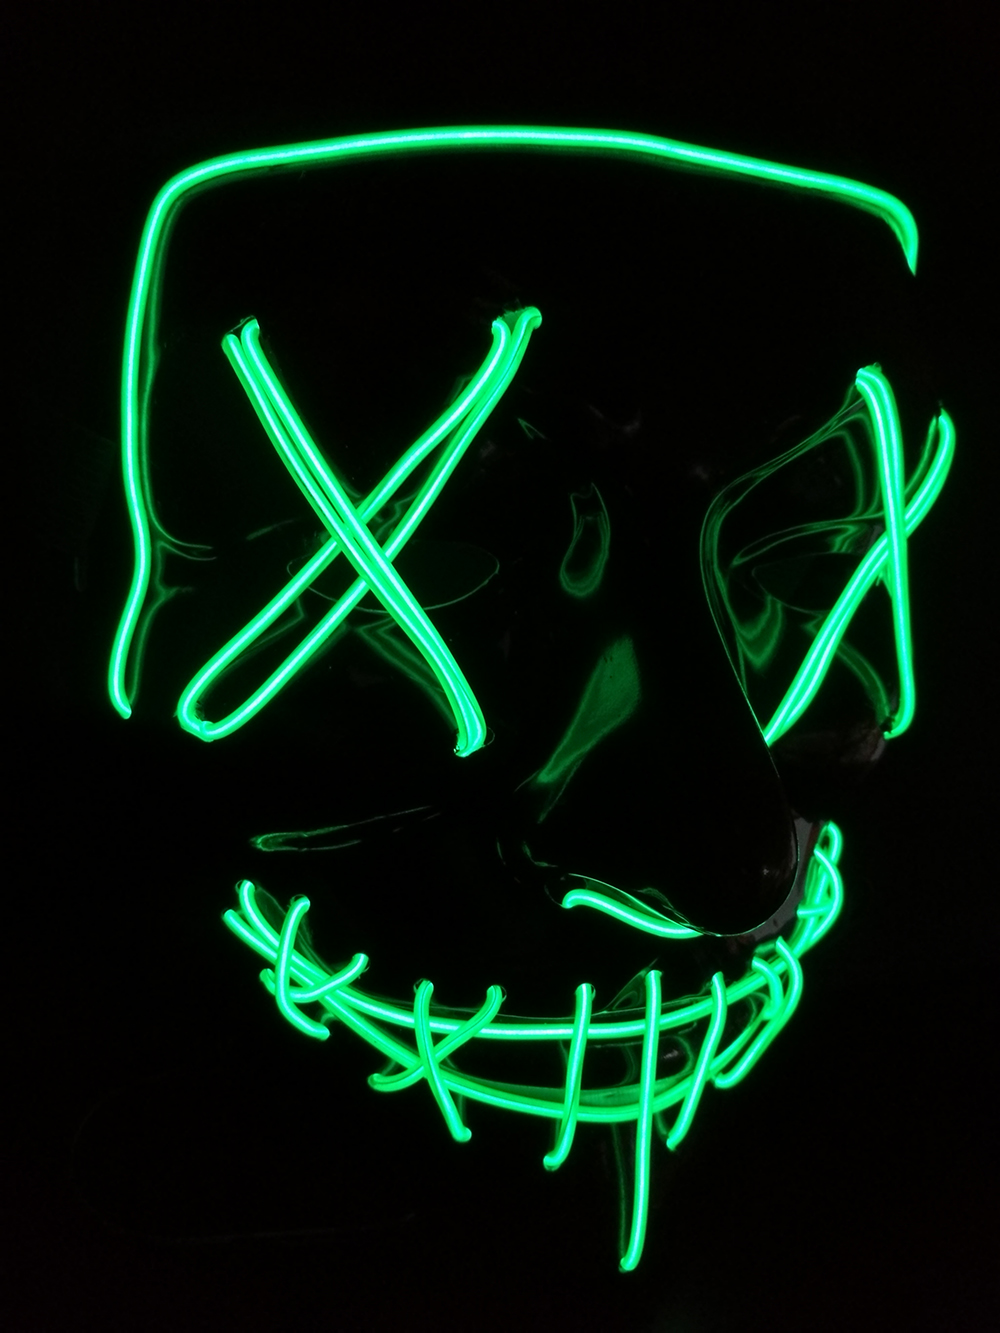 Halloween Mask Futuristic Led Light Up Glow In The Dark